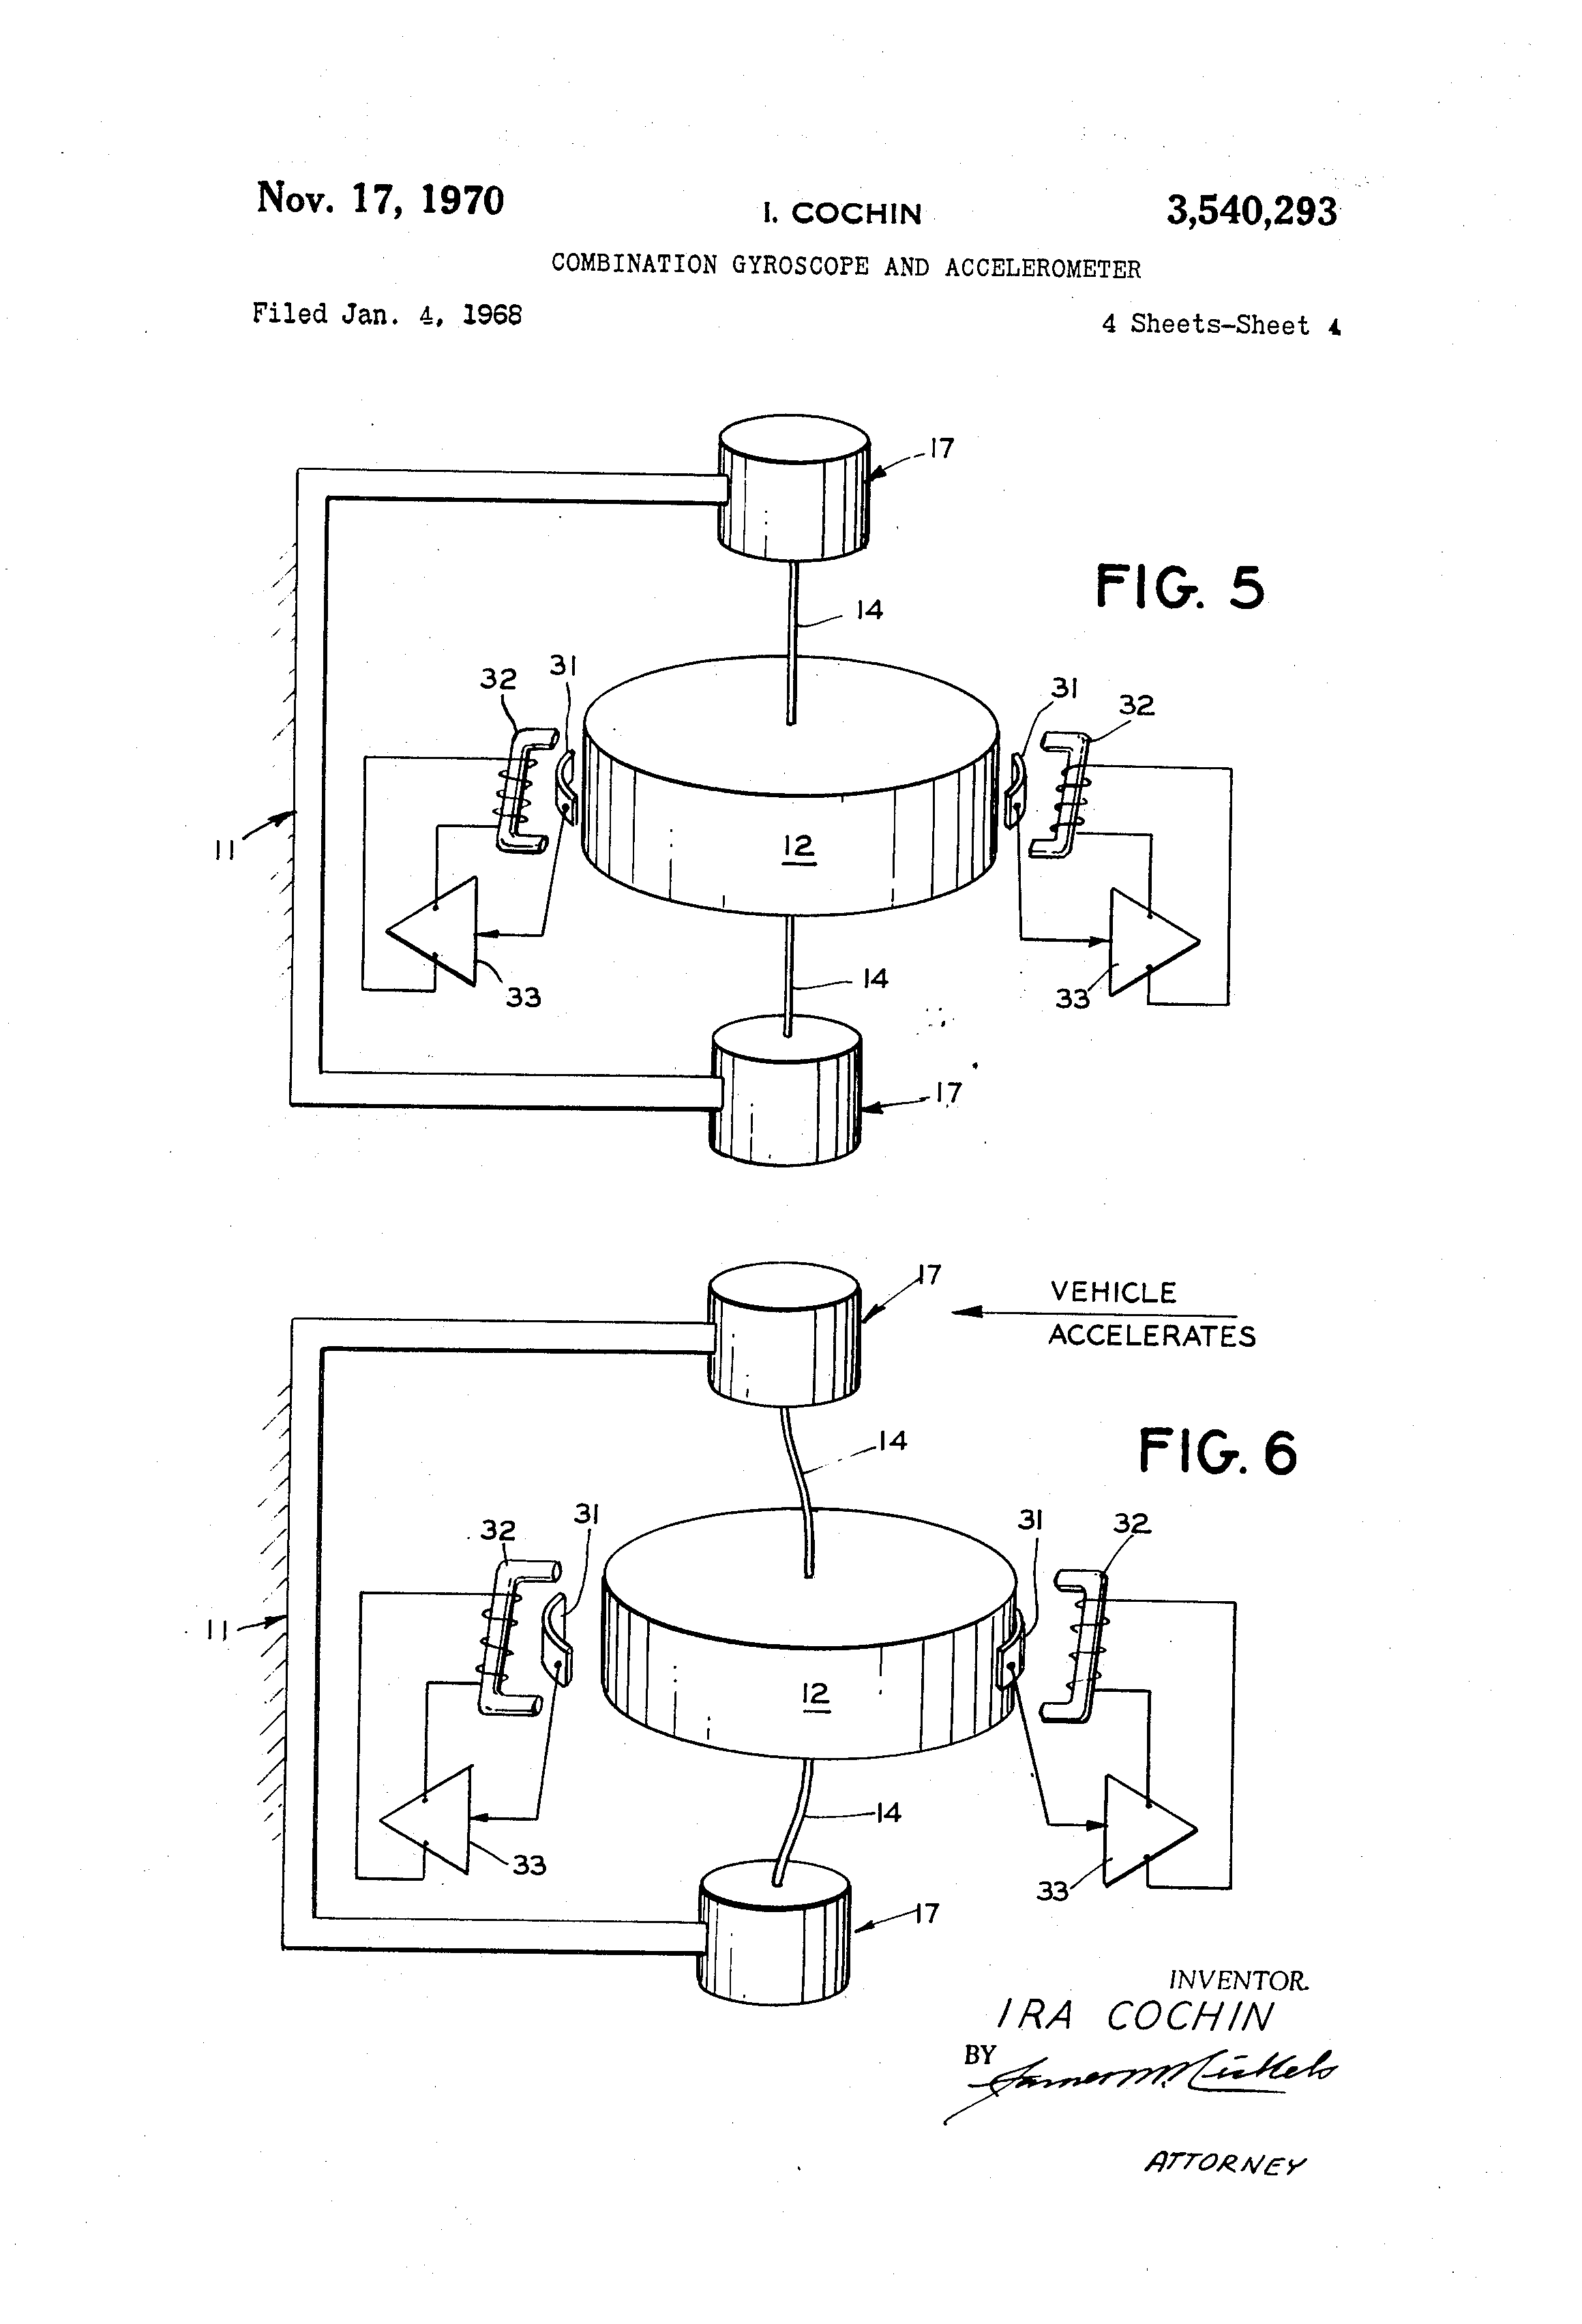 Patent US3540293 - Combination gyroscope and accelerometer